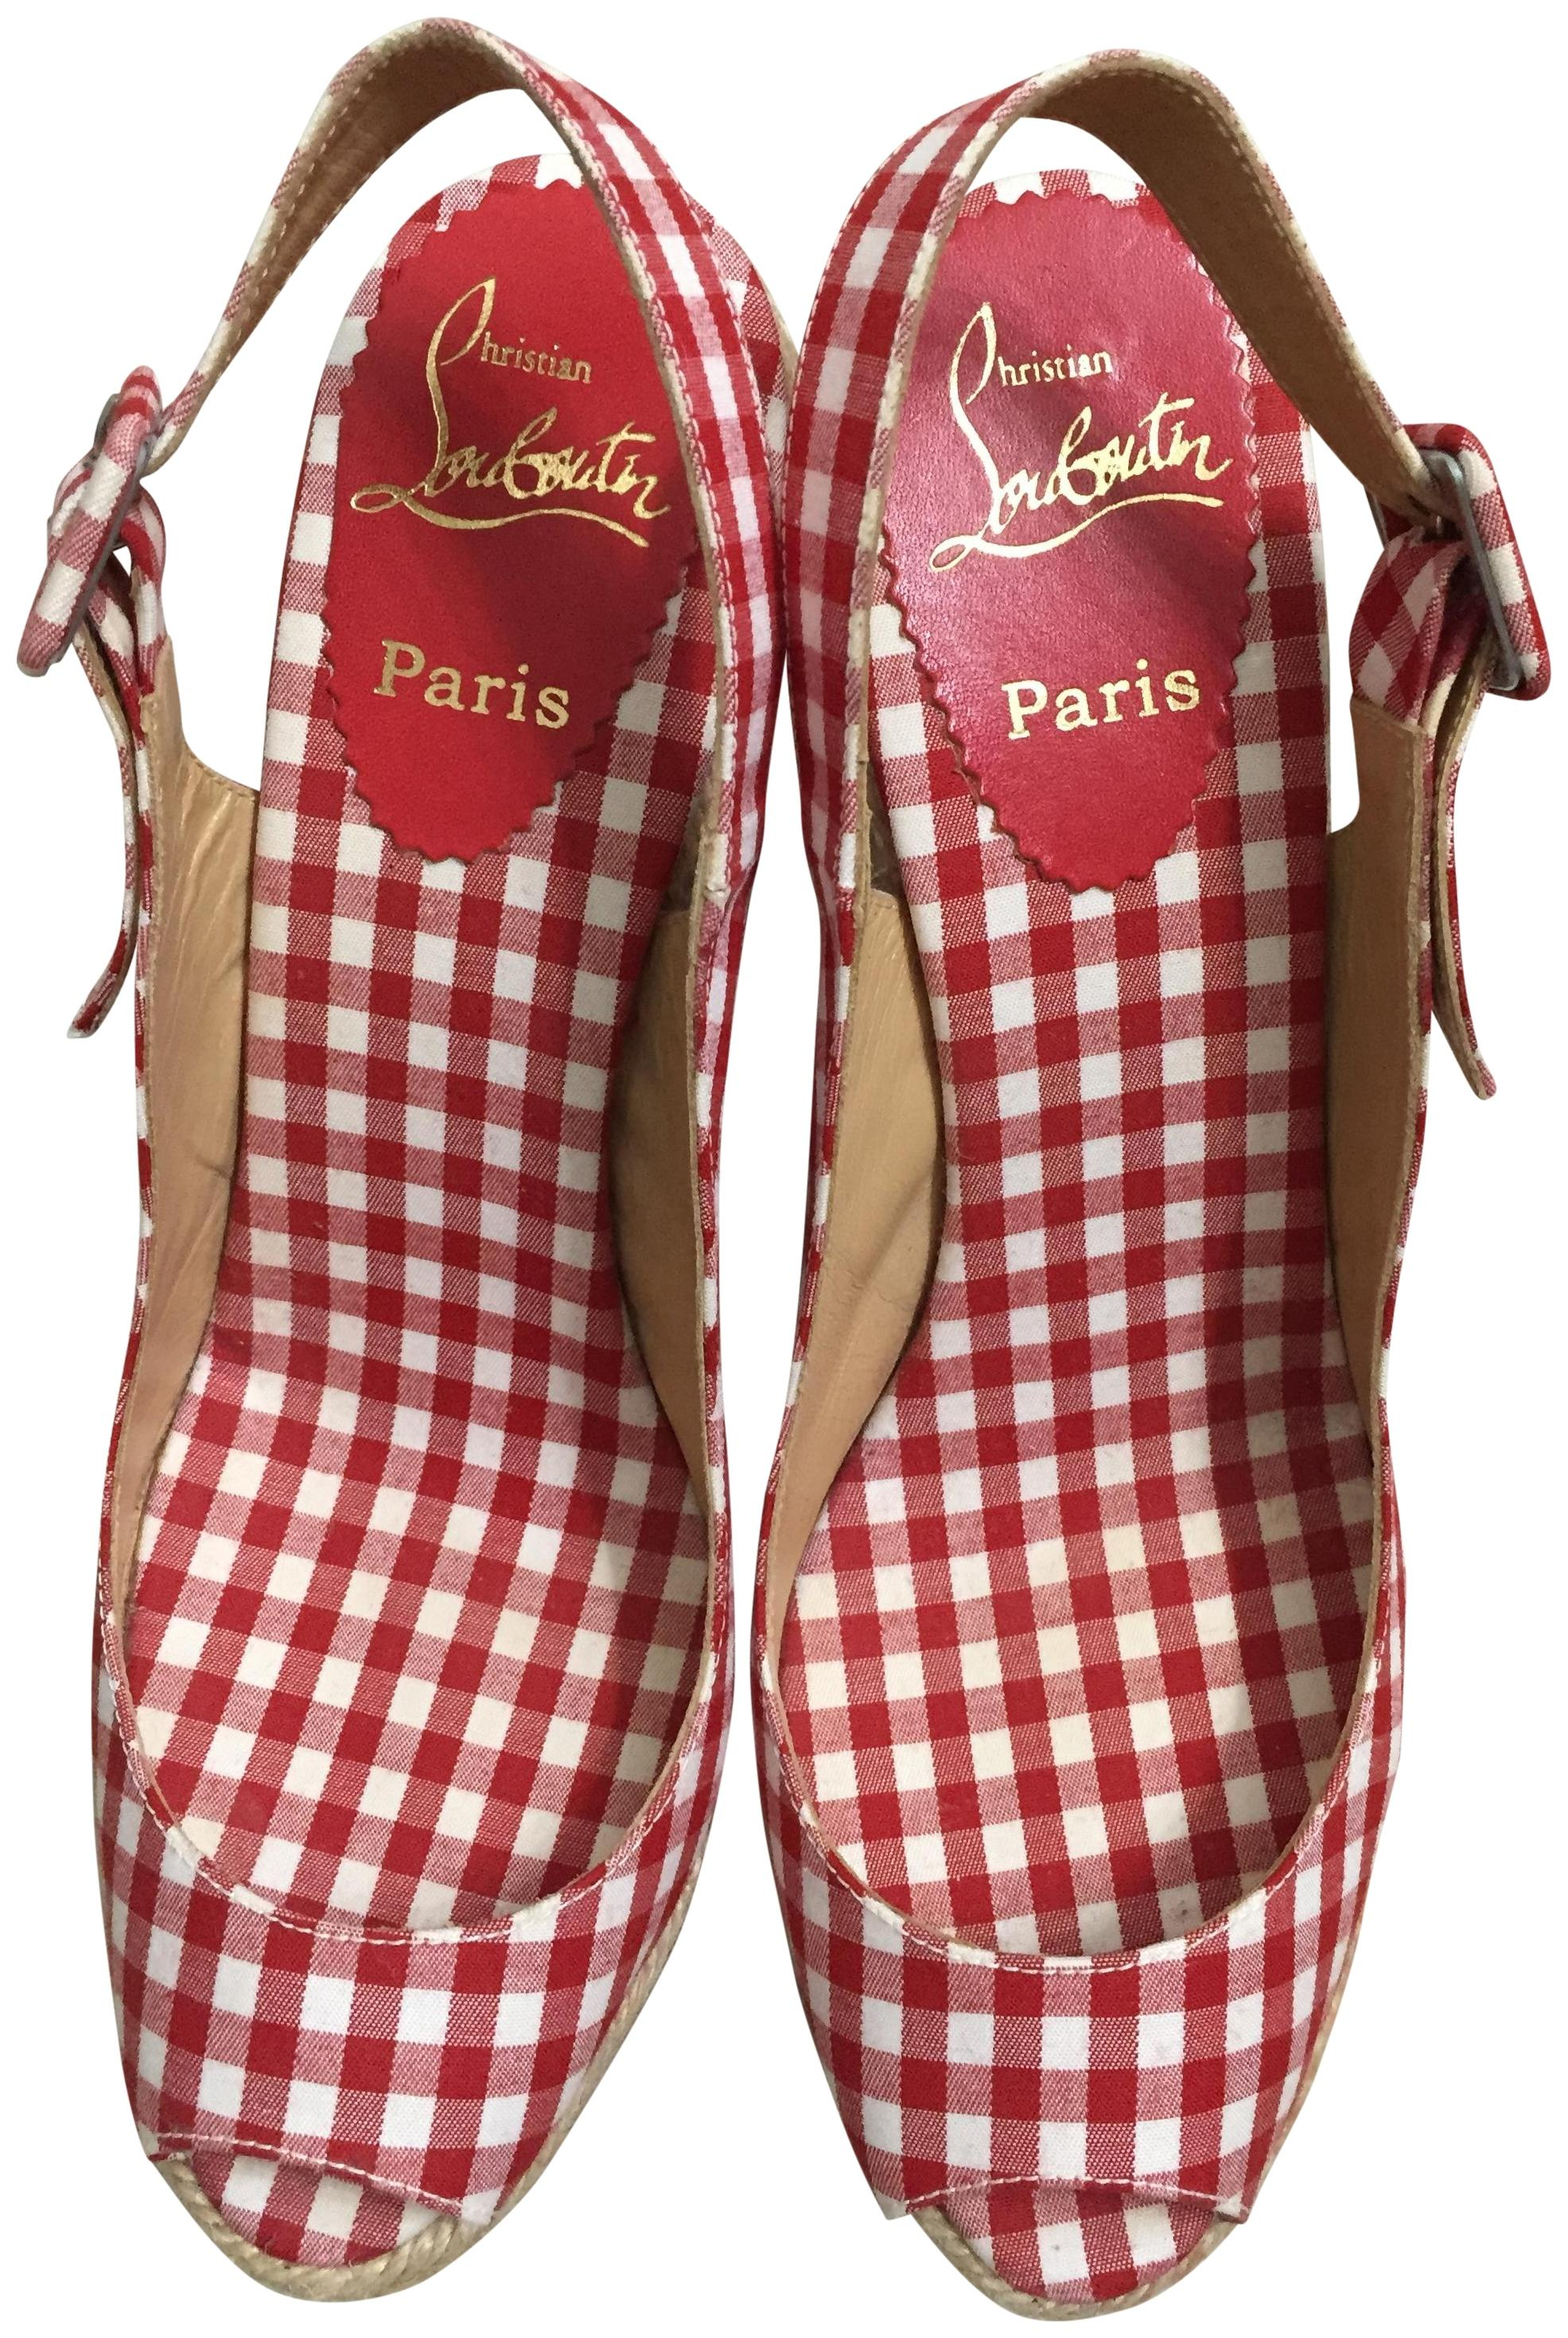 for nice for sale footaction for sale Christian Louboutin Mallorca Gingham Espadrilles limited edition for sale JlqTQr